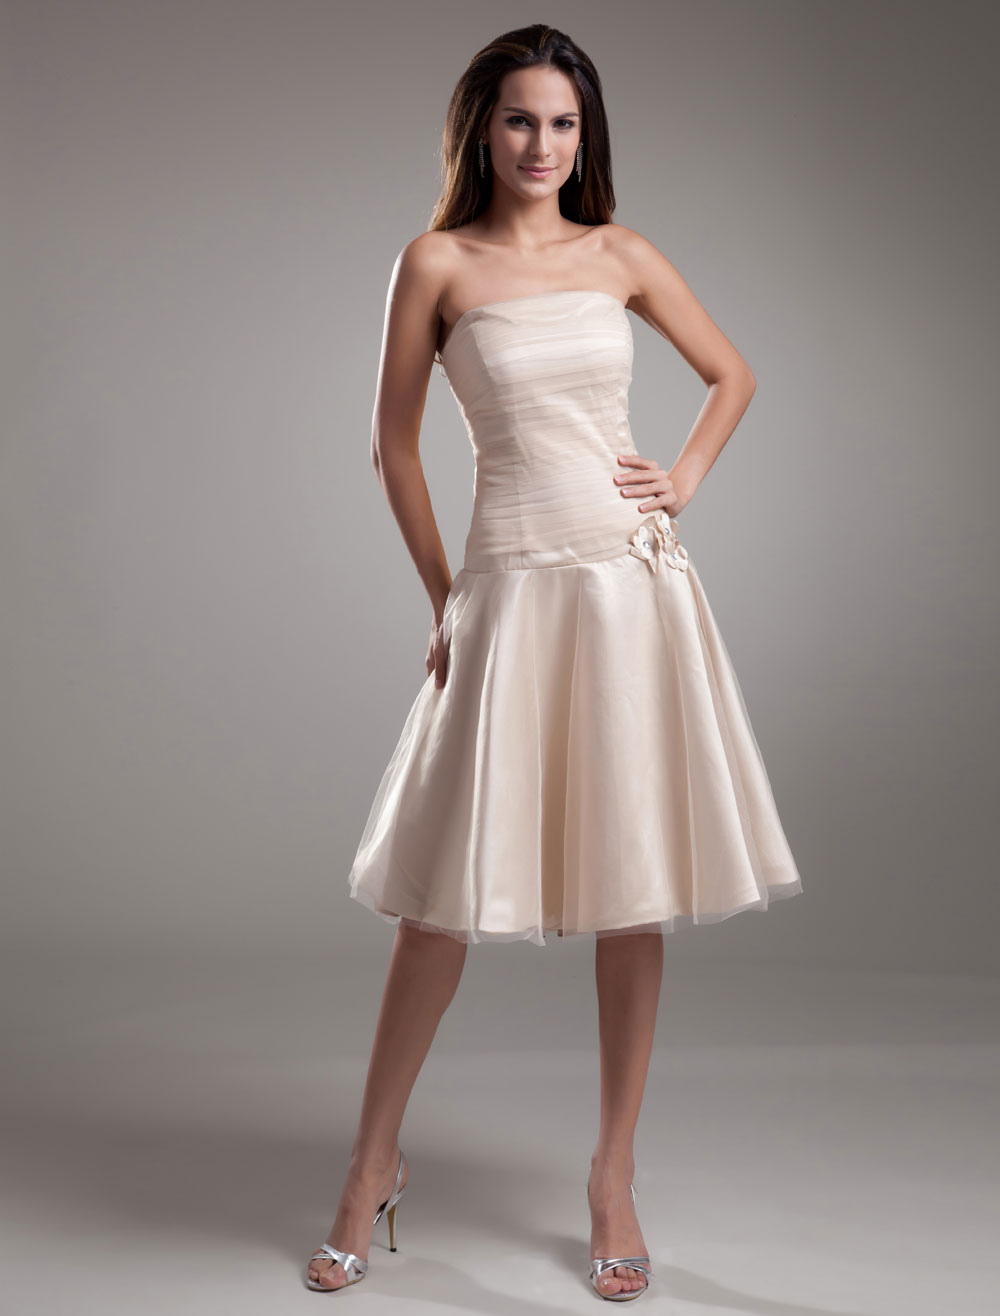 Gold Champagne Bridesmaid Dress Strapless Flowers Tulle Dress